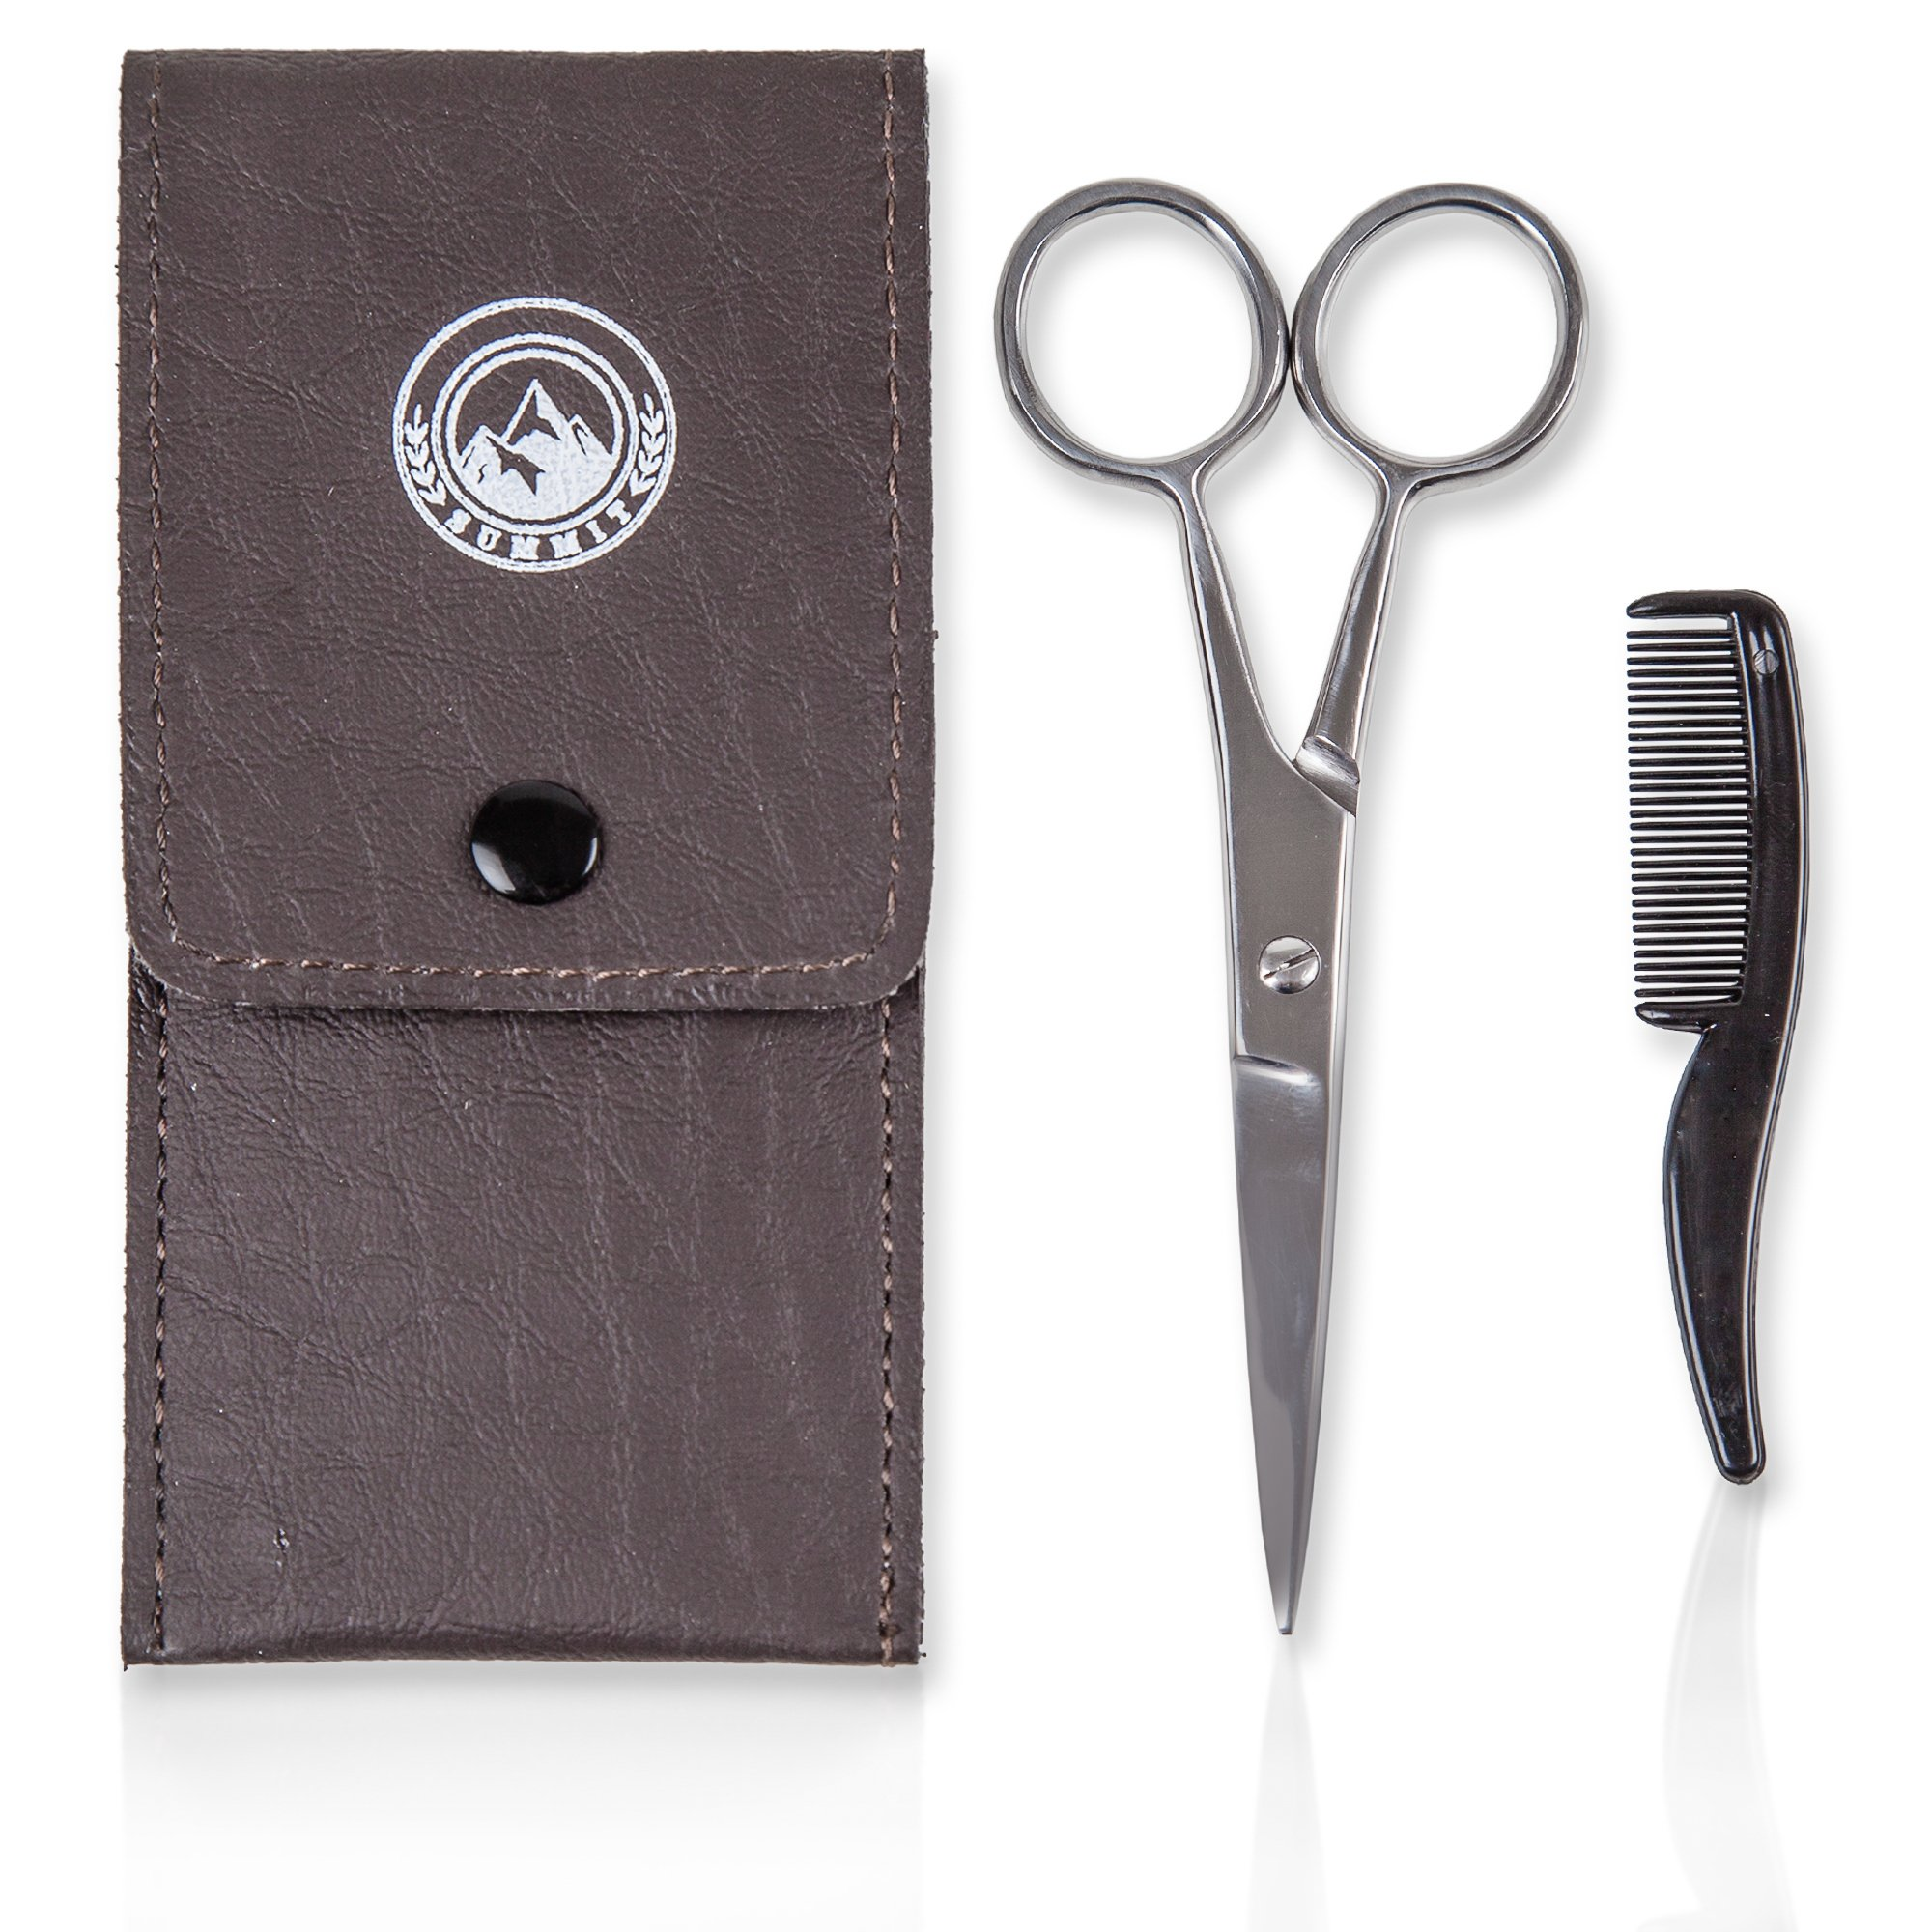 Facial Hair Scissors - Stainless Steel, Top Quality - Ear and Nose Hair Removal - Easy to Use At Home or When Traveling - Includes Case and Grooming Comb